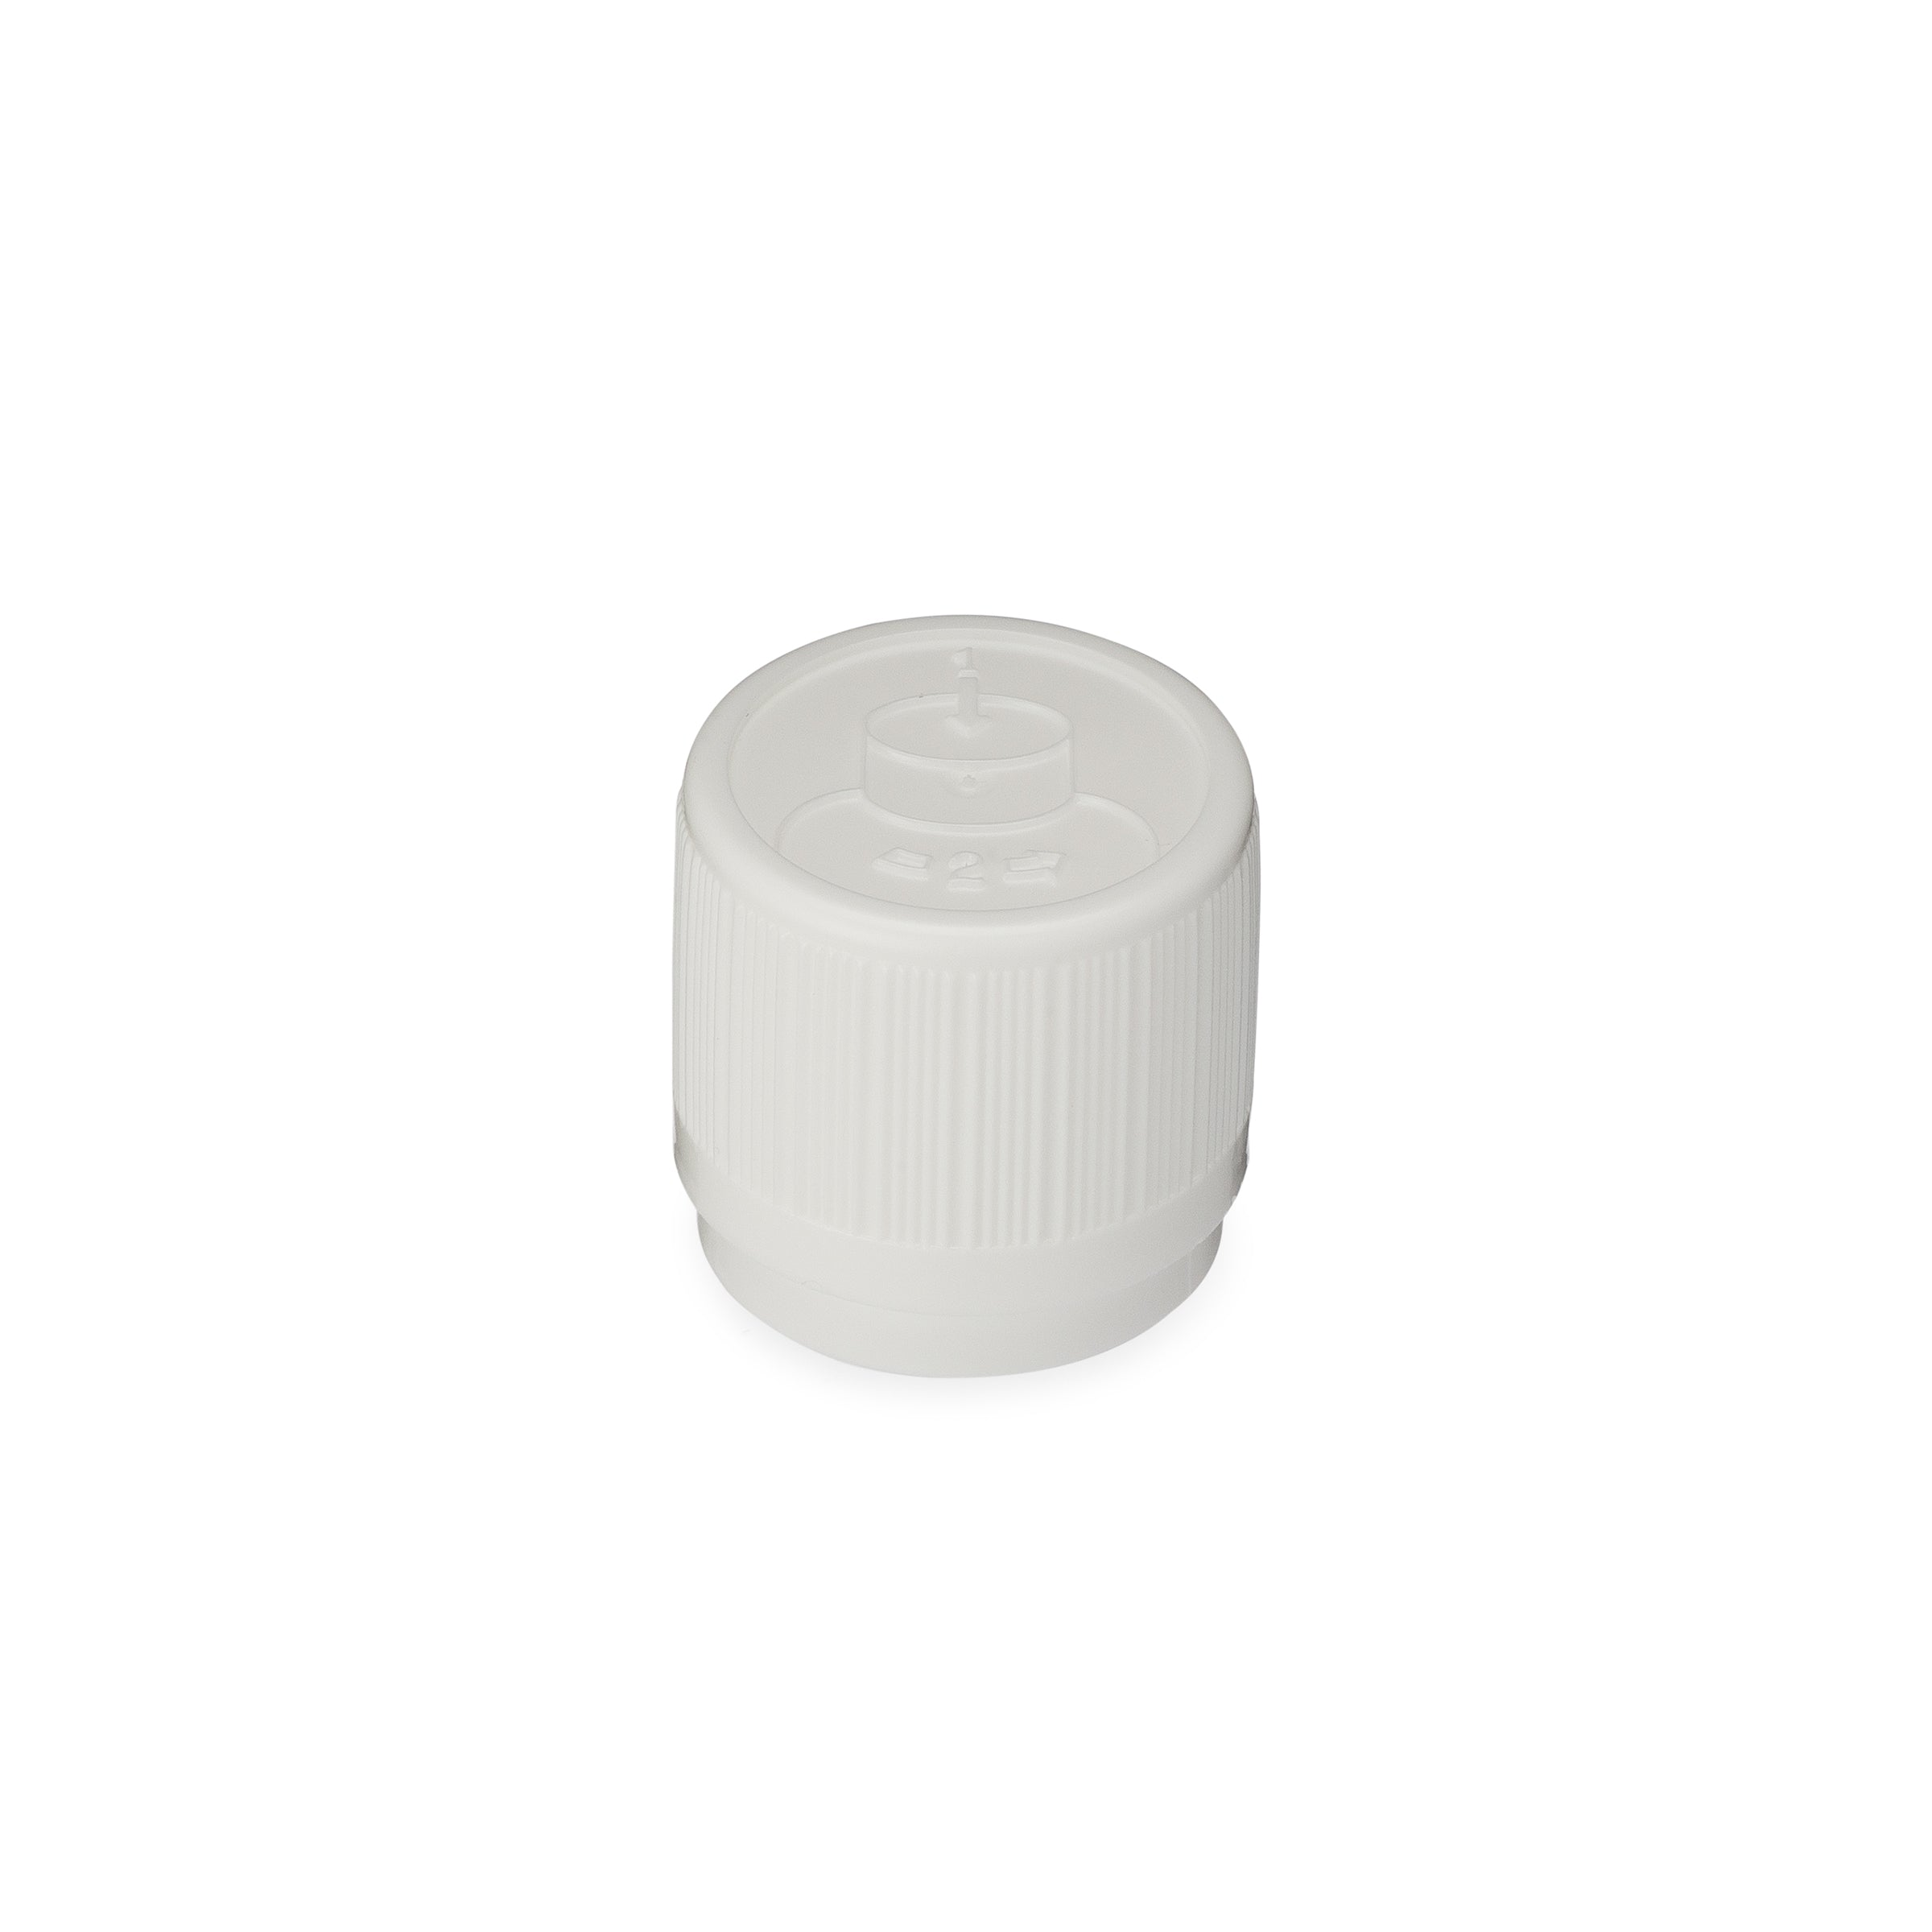 Child Resistant /  Tamper Evident Eurodrop Cap with Syringe Adaptor - 2-18136